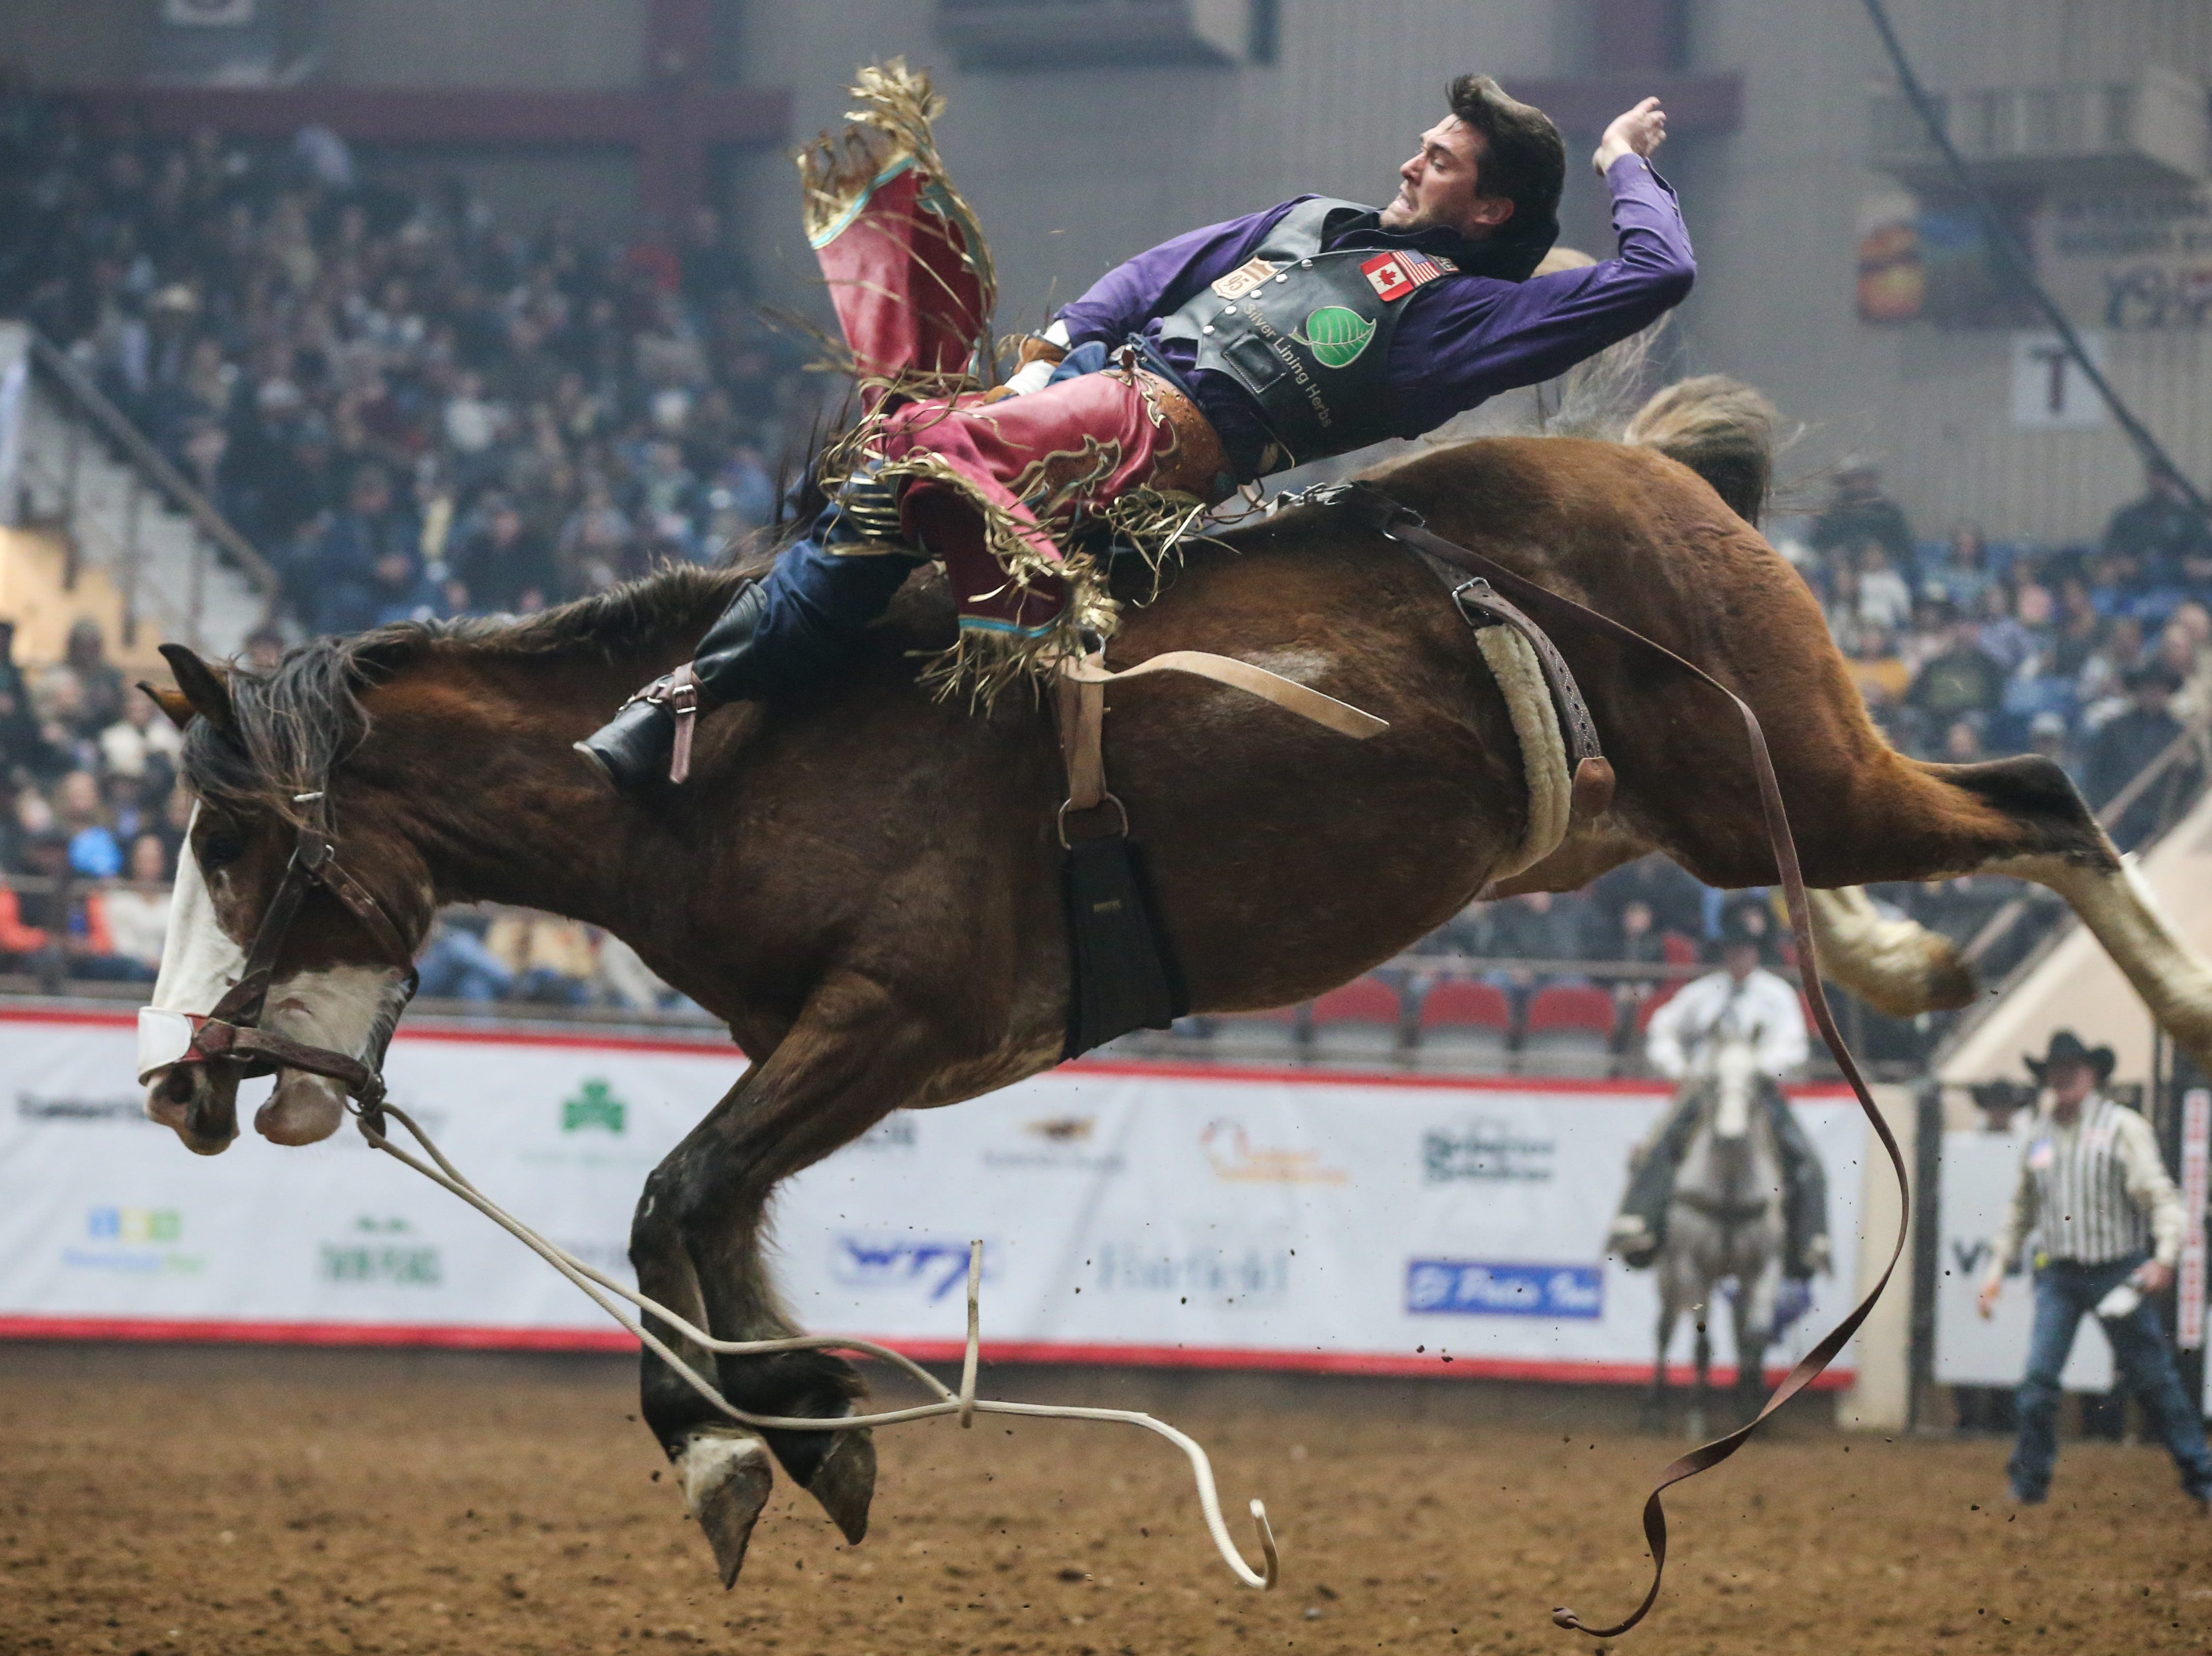 Caleb Bennett rides bareback during the 5th performance of the San Angelo Stock Show & Rodeo Friday, Feb. 8, 2019, at Foster Communications Coliseum. He scored 85.5 on his ride.